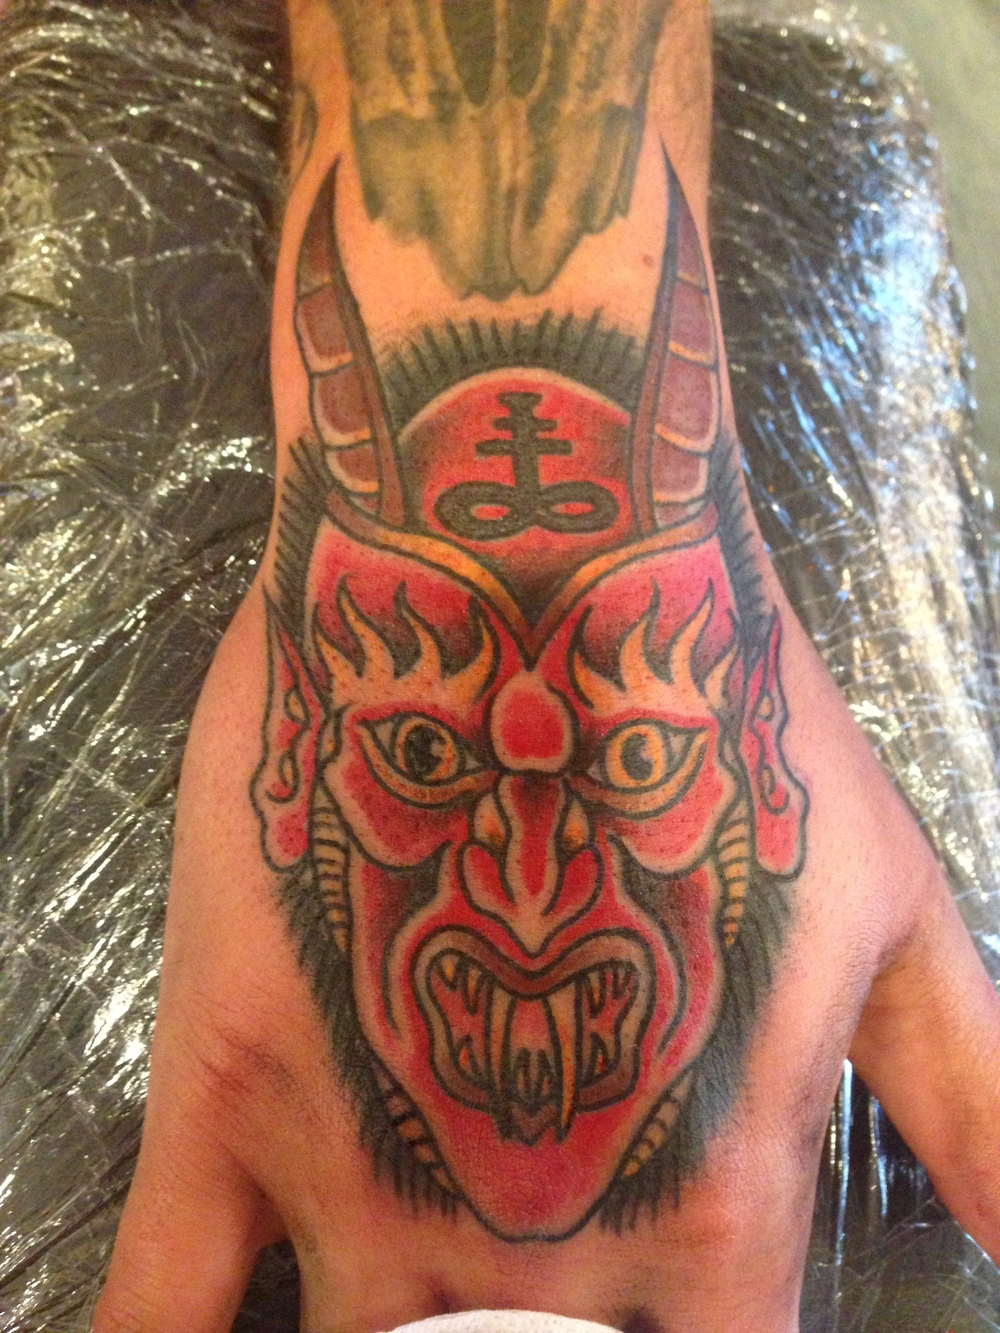 satan-demon-matt-lucci-tattoo.JPG